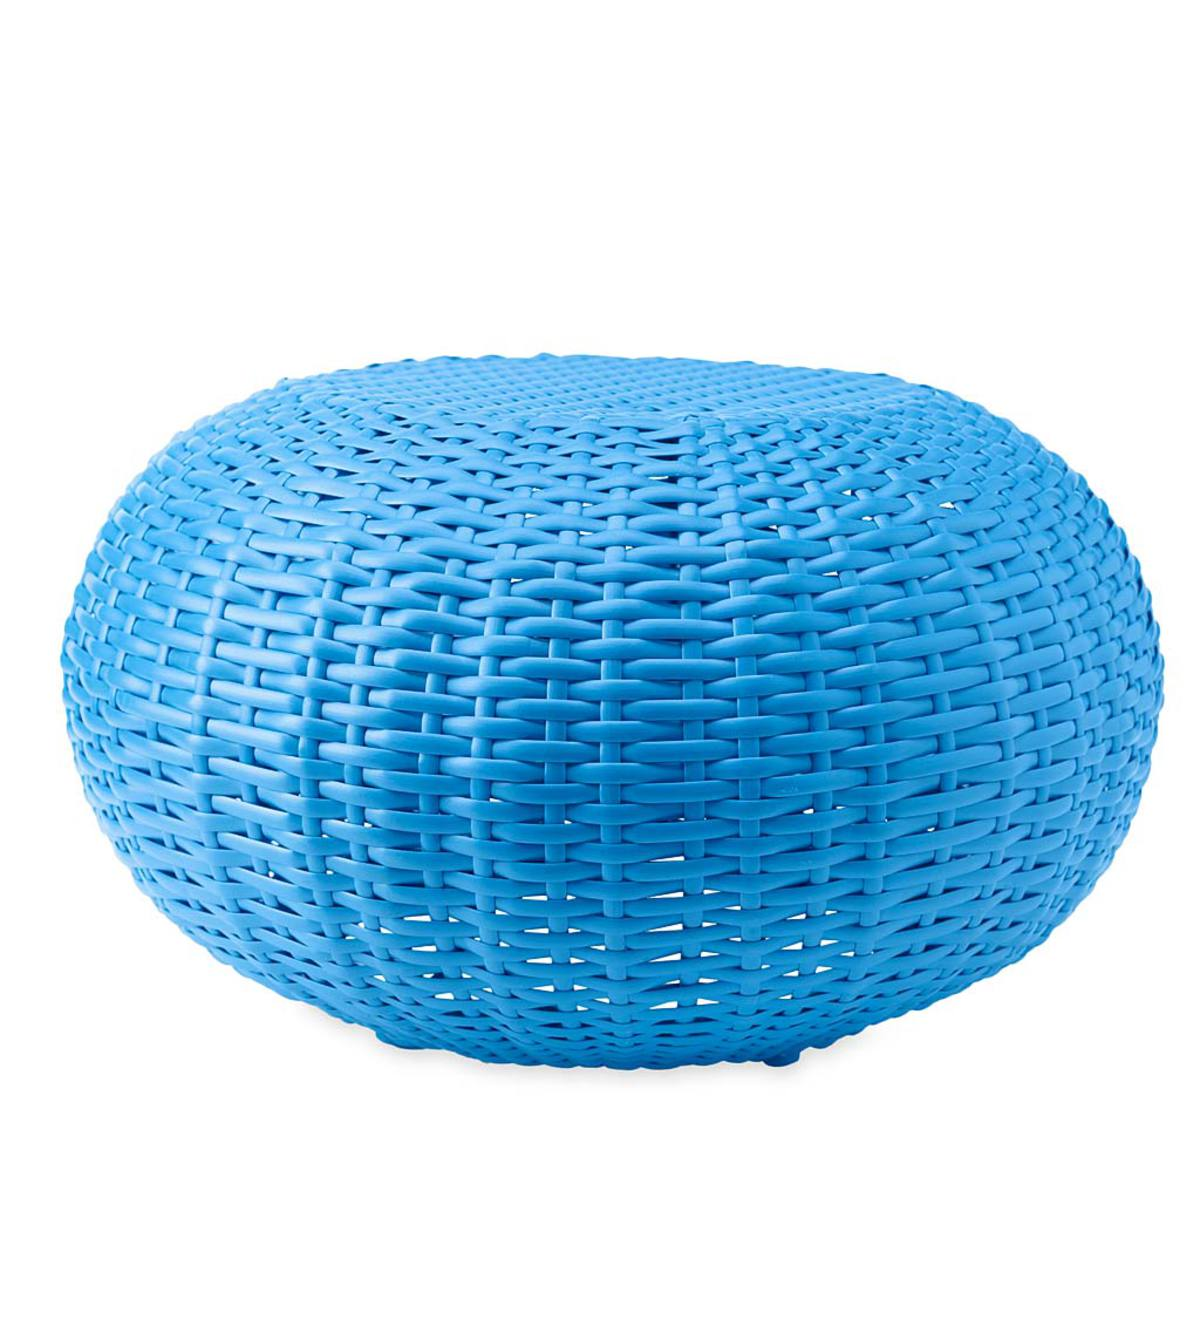 Tangier Wicker Ottoman Pouf, Small - Blue